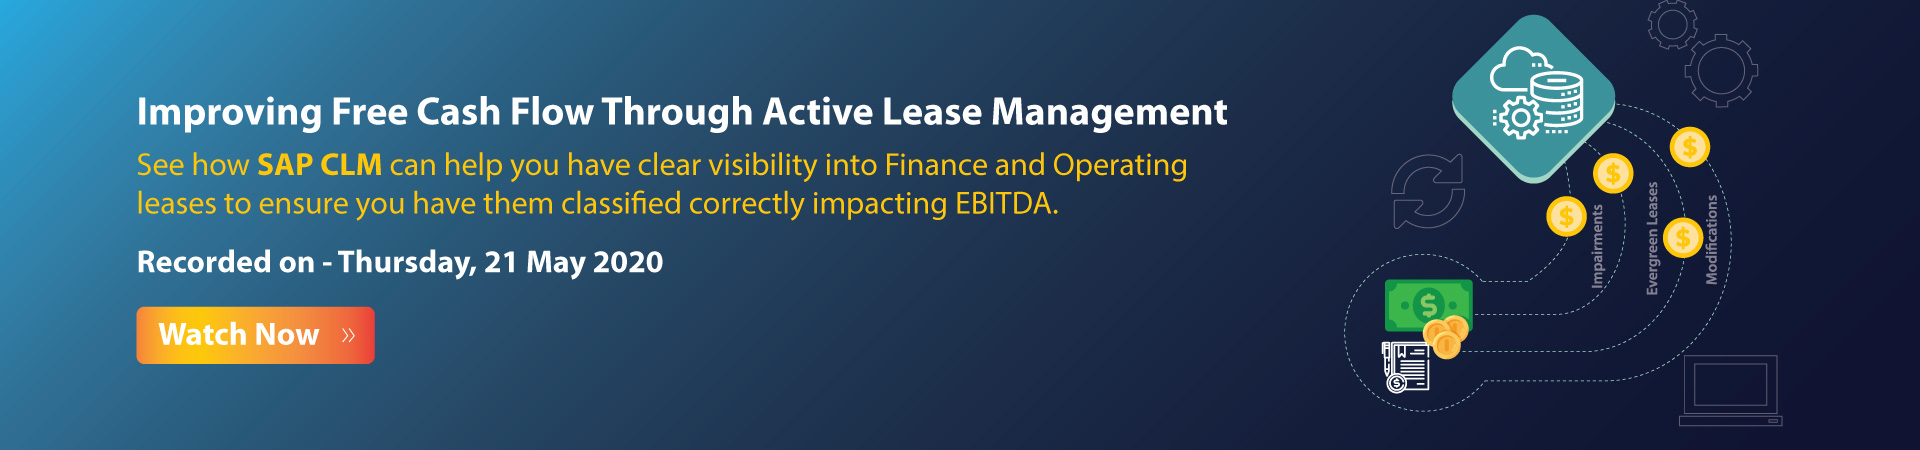 Active Lease Management Banner